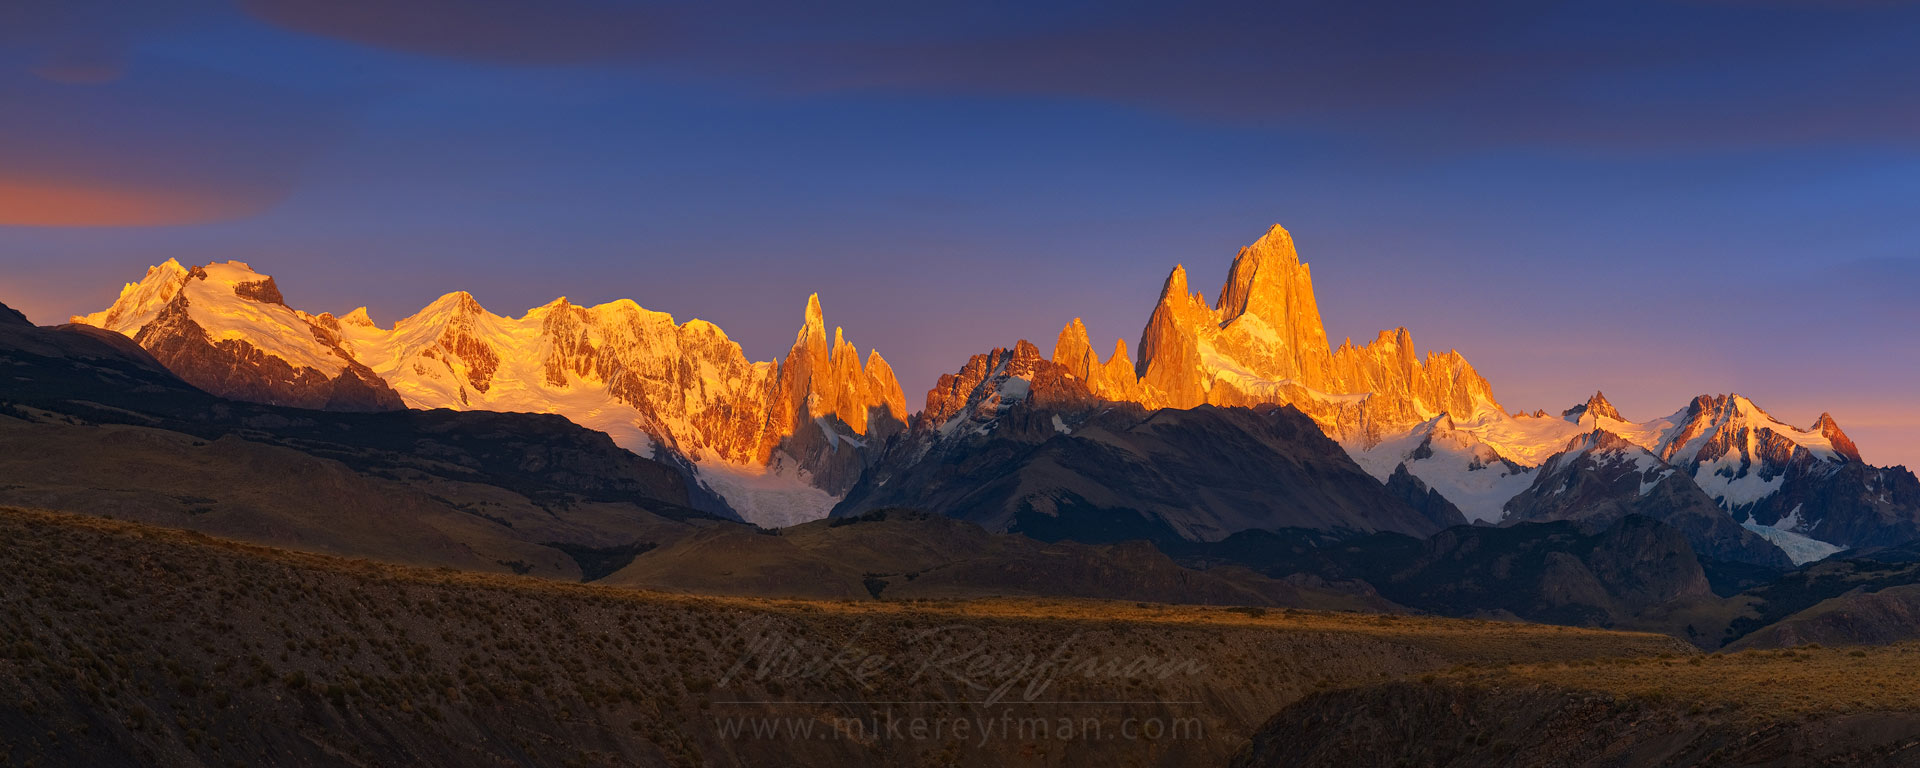 First Light. Fitzroy and Cerro Torre massifs at Sunrise from Las Vueltas River canyon overlook. Patagonian Andes, Santa Cruz, Argentina.   - Fitzroy-Cerro-Torre-Perito-Moreno-Patagonia-Argentina - Mike Reyfman Photography